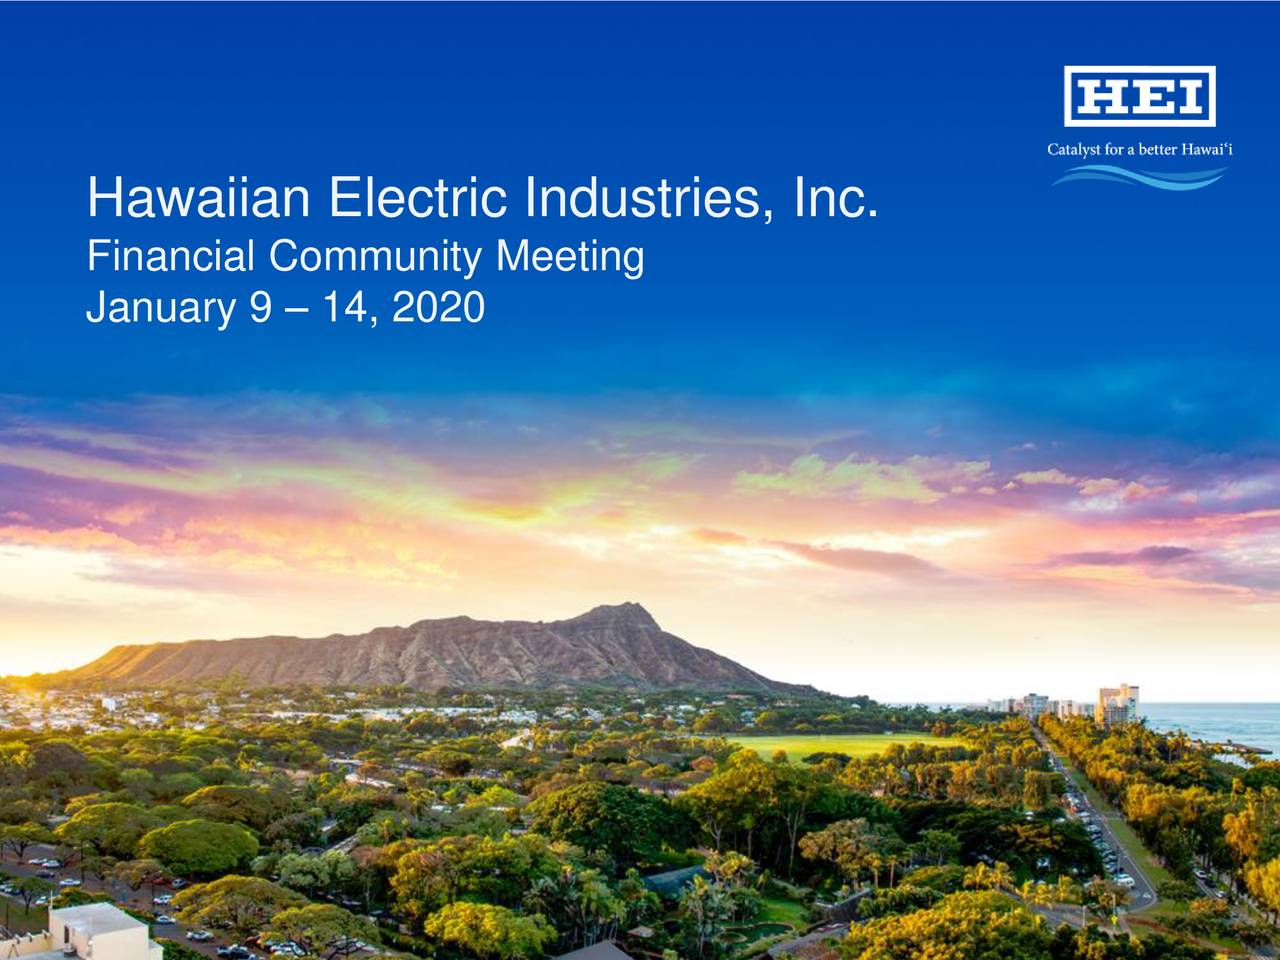 Hawaiian Electric Industries, Inc.